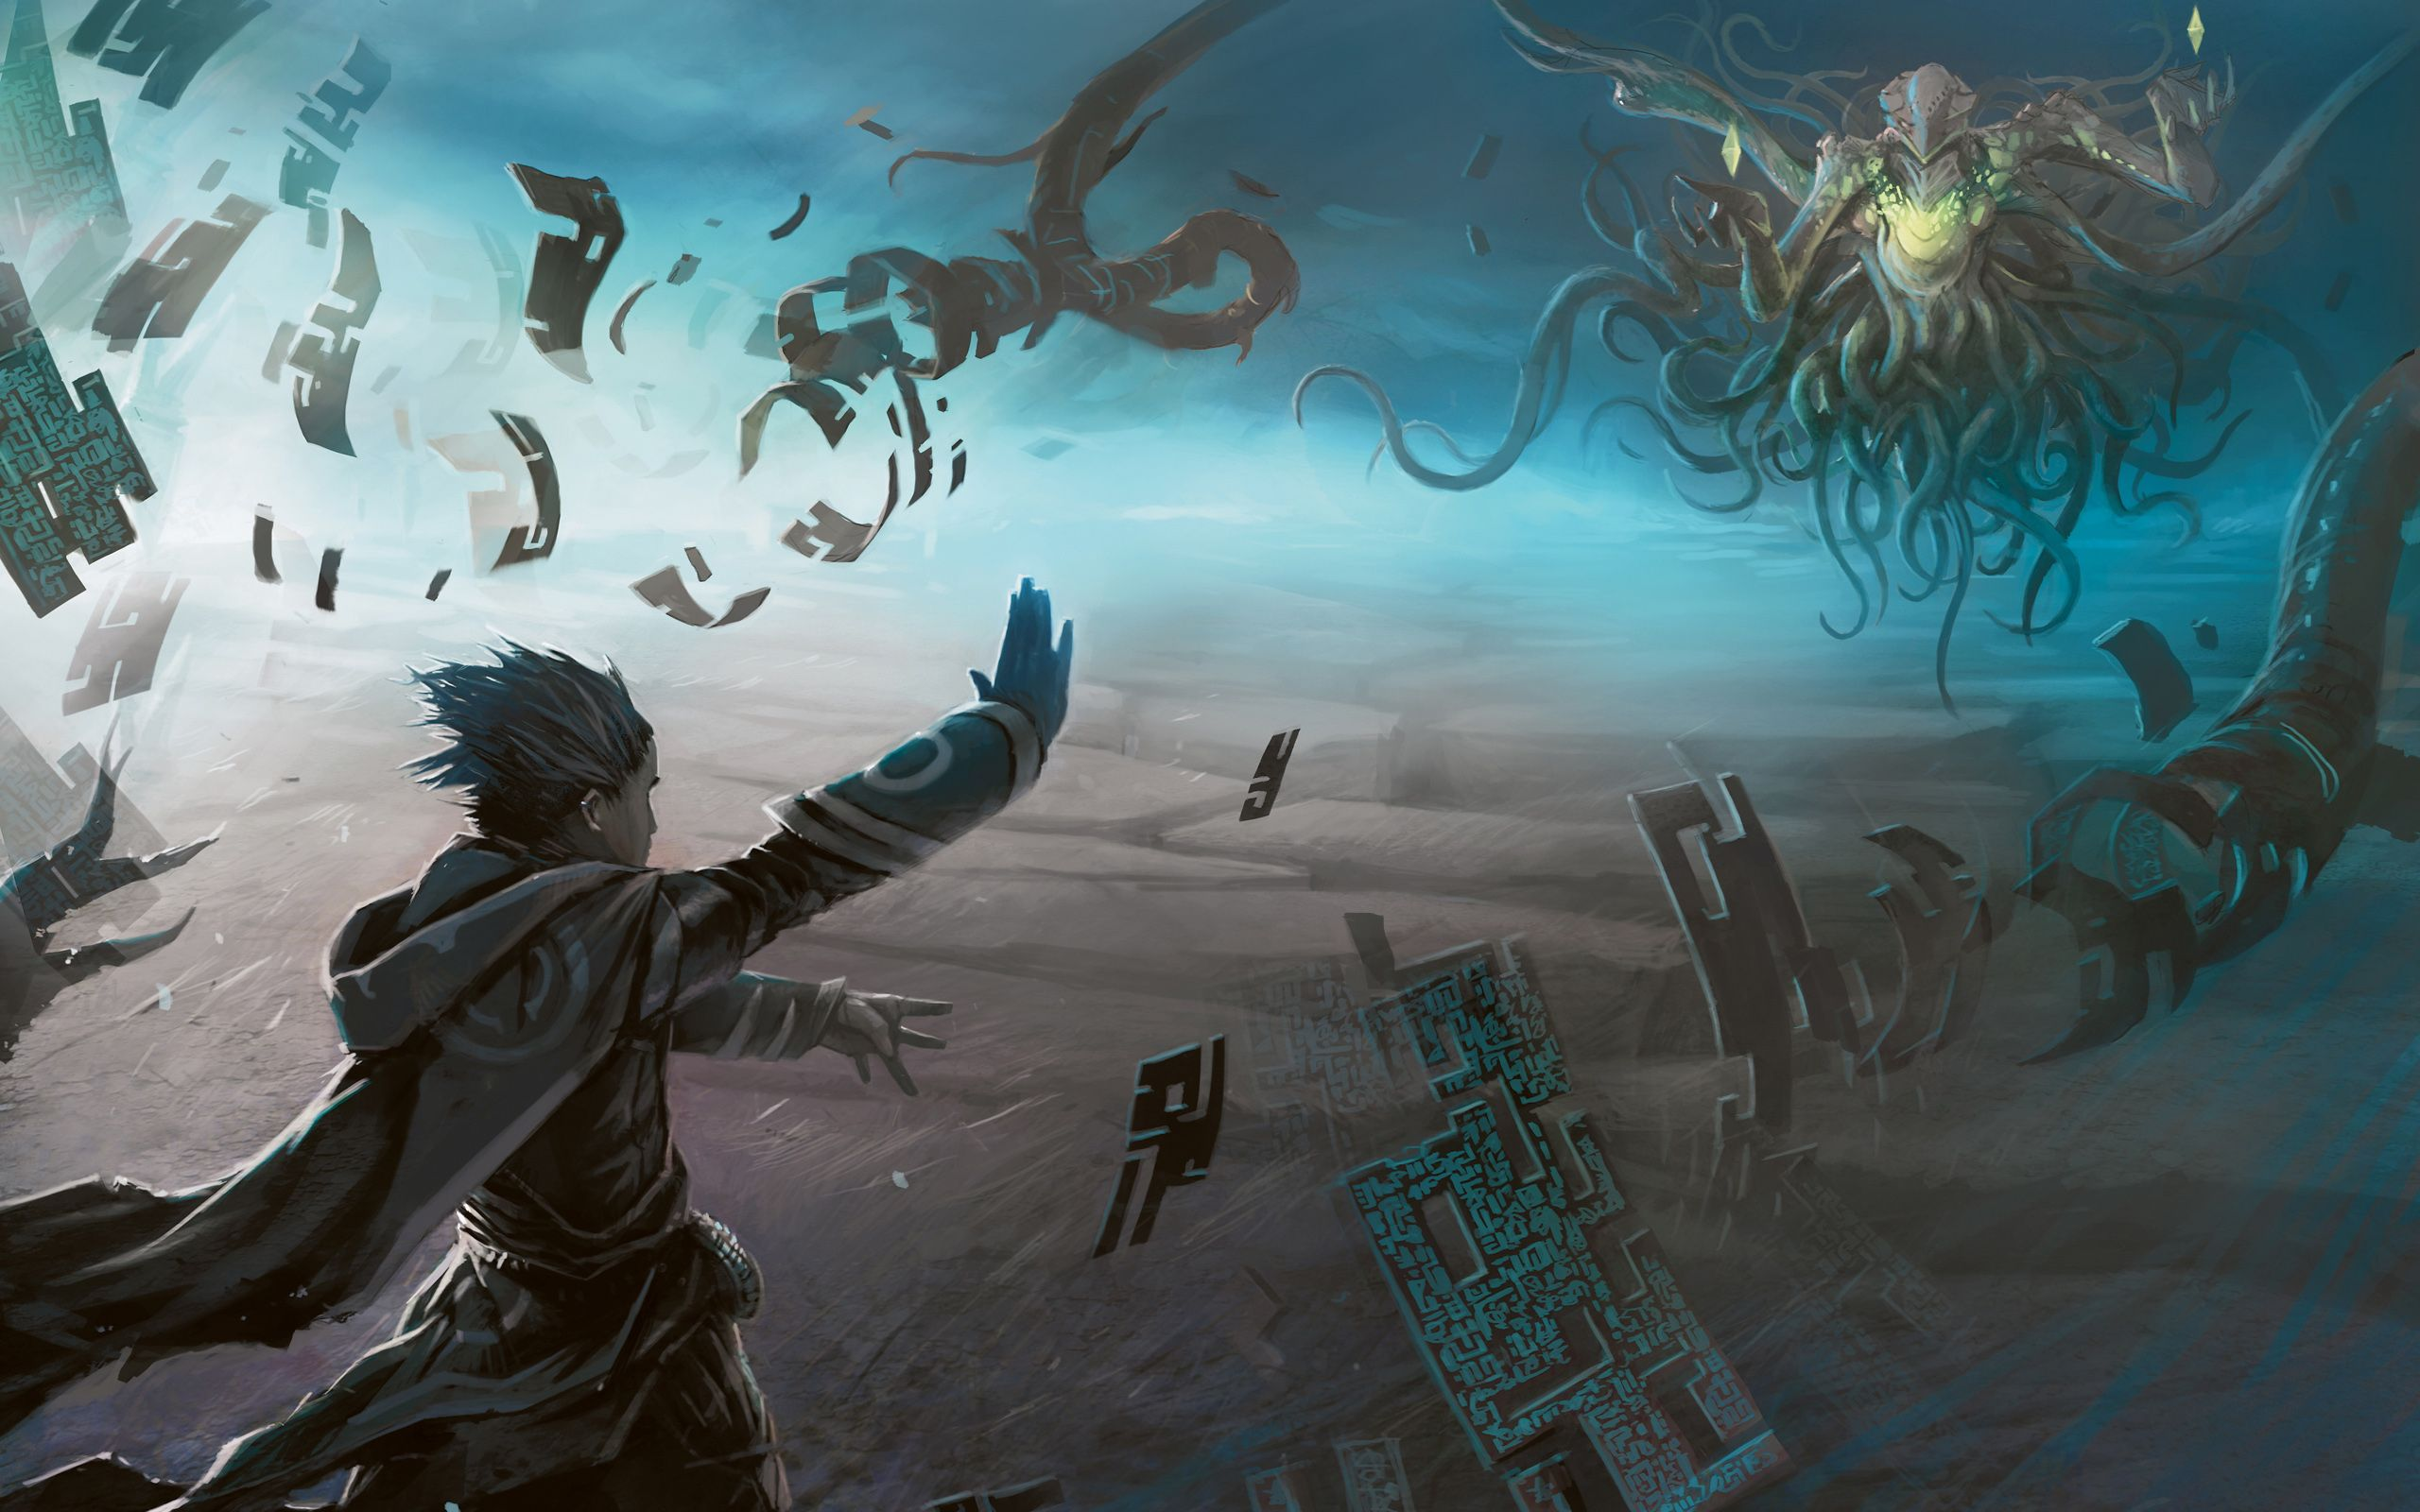 Magic The Gathering Wallpaper 2560x1600 Id 32836 Magic The Gathering Mystical World Concept Art Characters